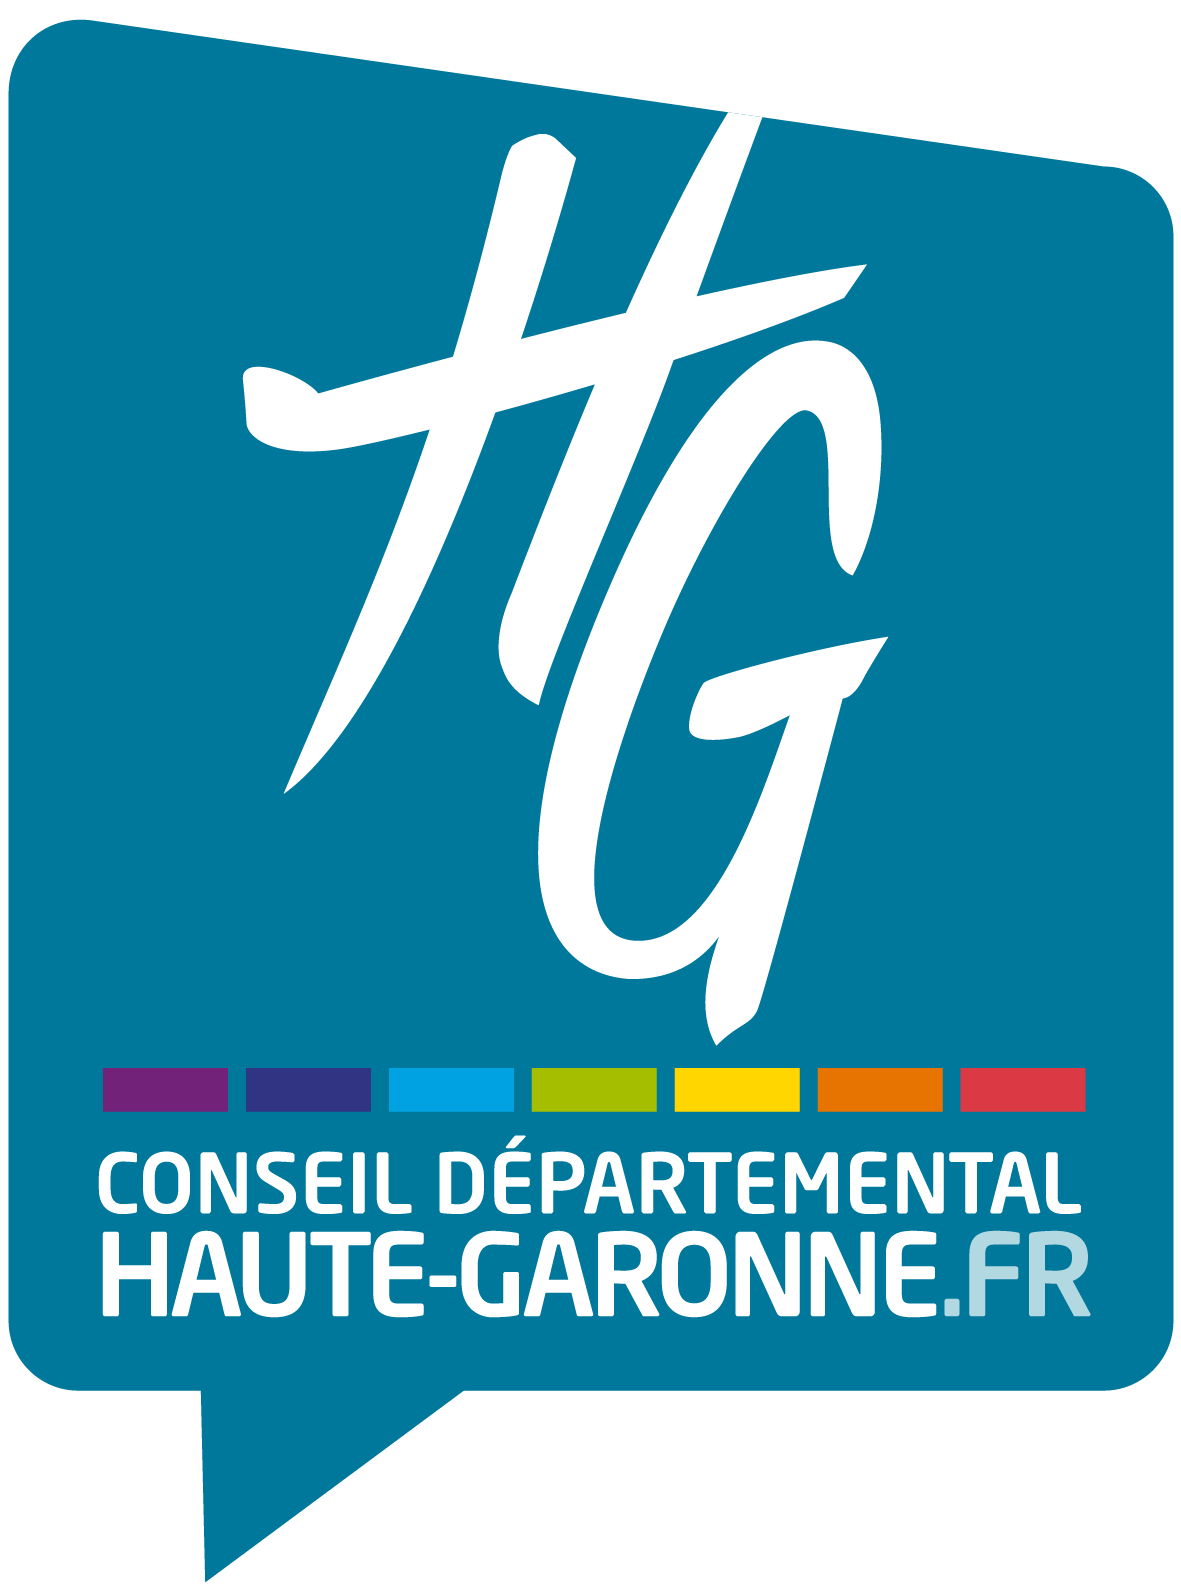 consil DEPARTEMENTAL 31 logo rvb 01